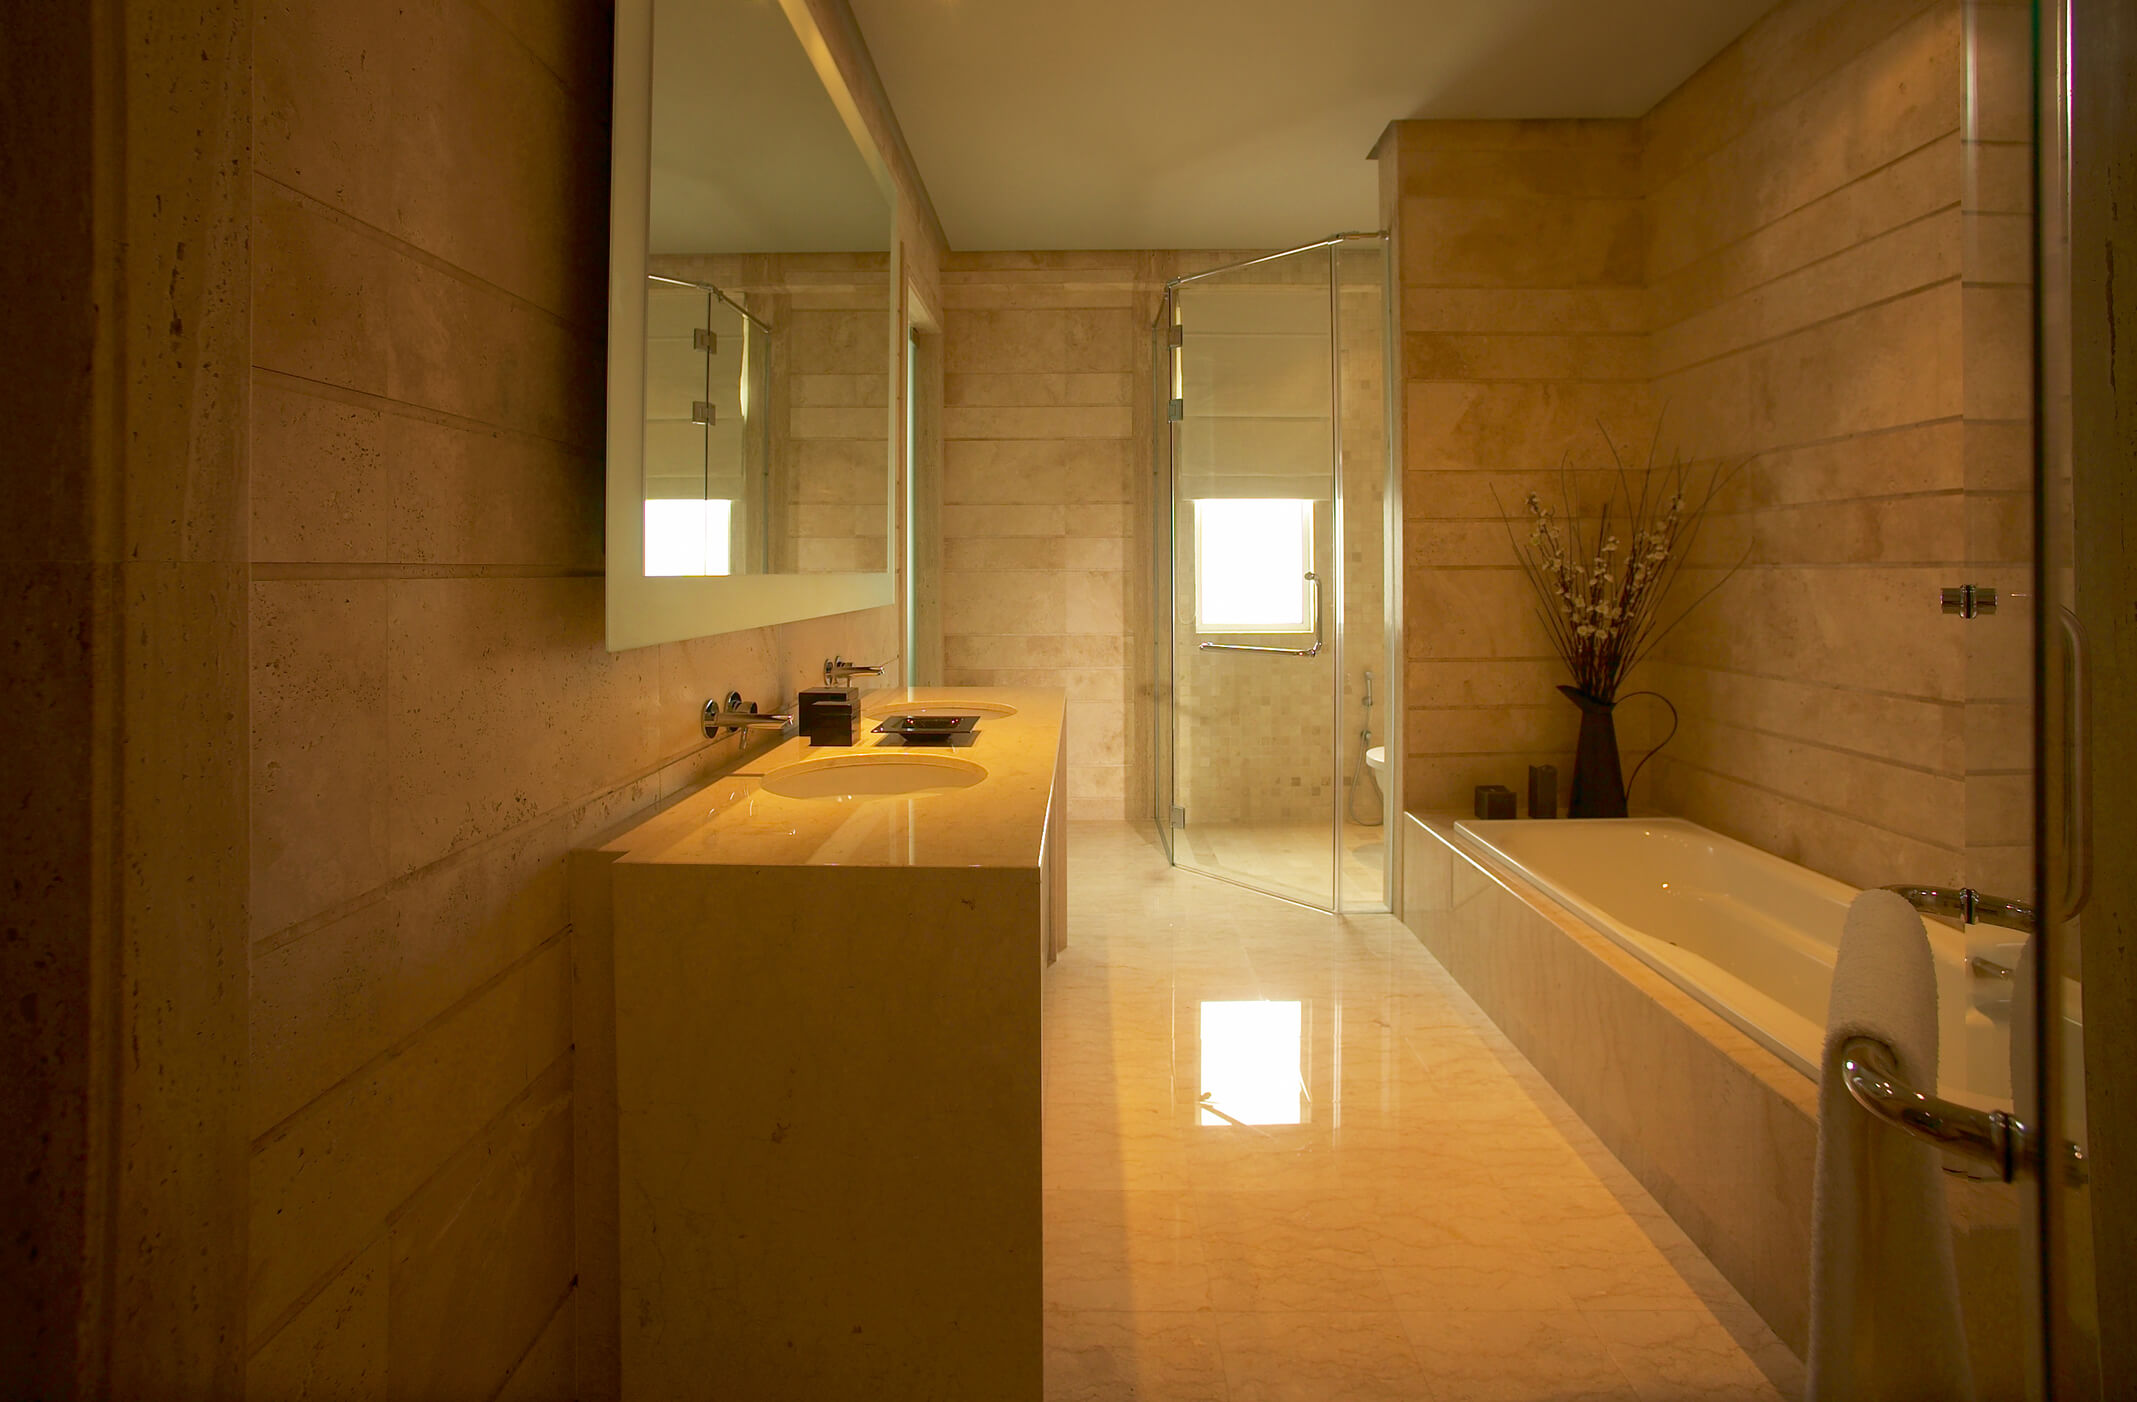 Interior of an elegant bathroom.